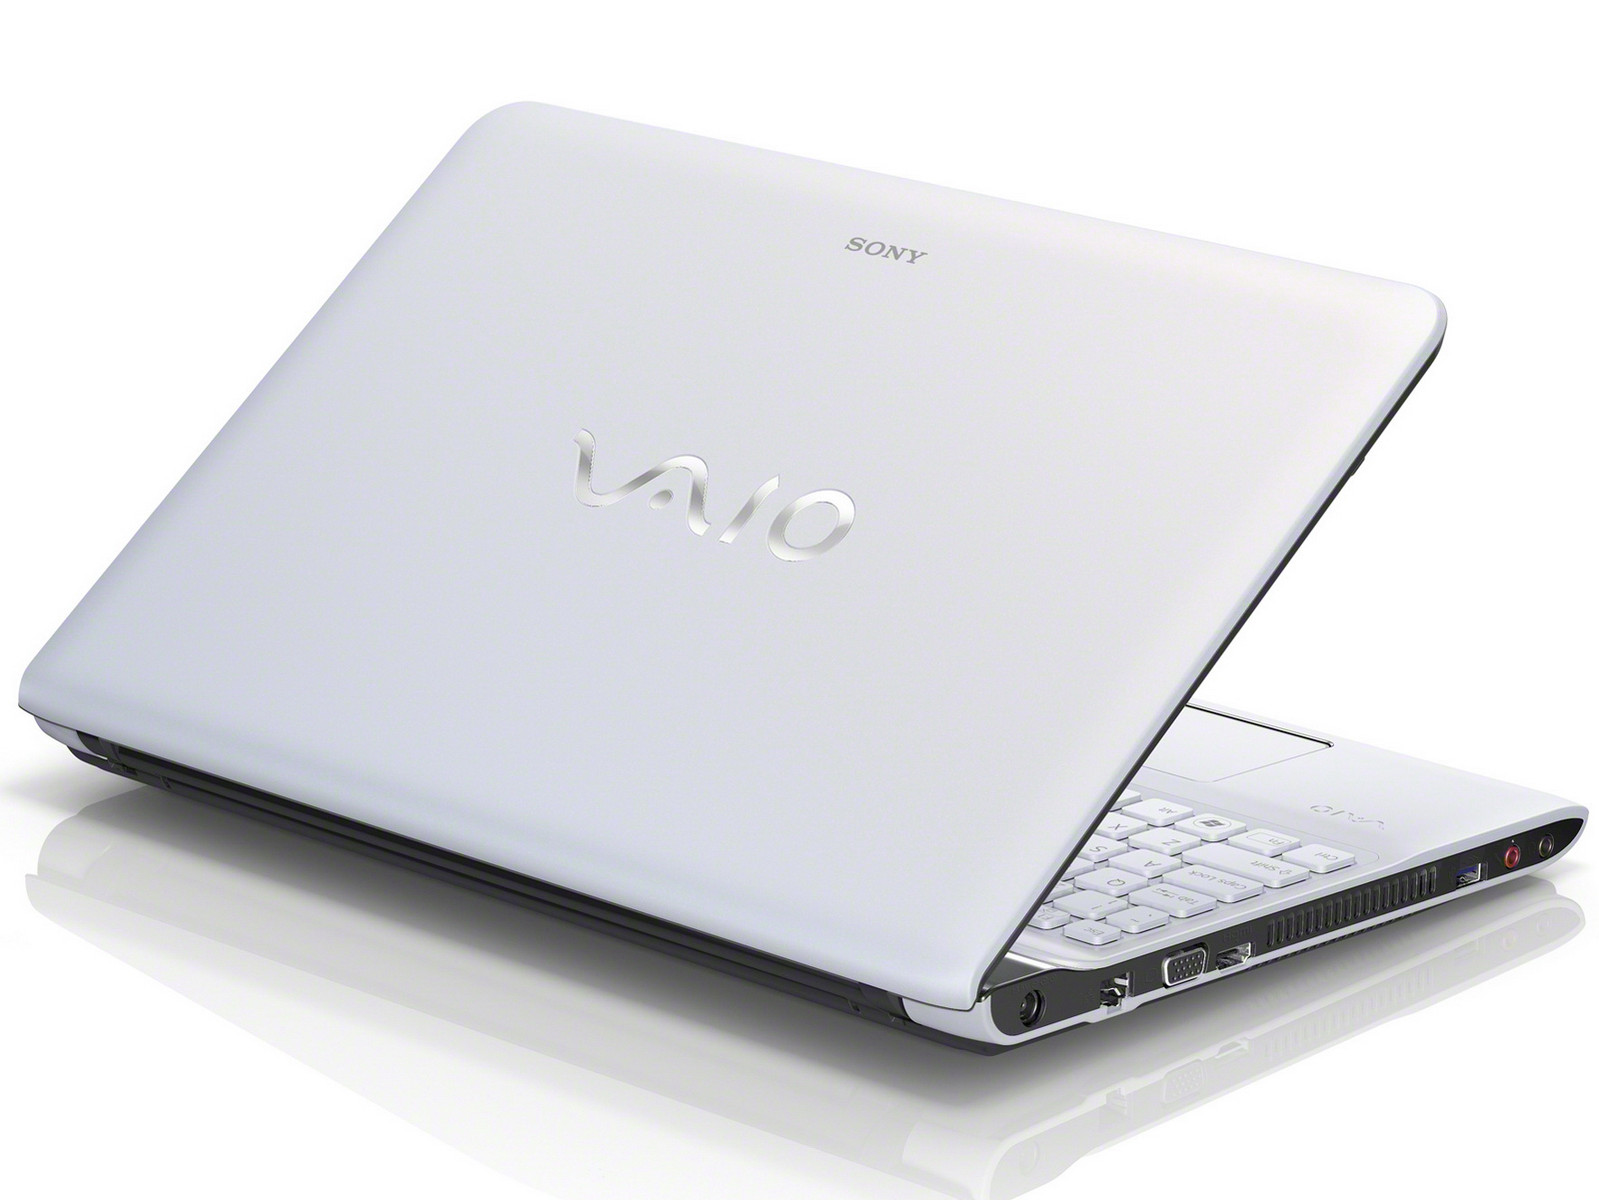 sony neue notebook modelle bei der vaio e serie 15 und 17. Black Bedroom Furniture Sets. Home Design Ideas